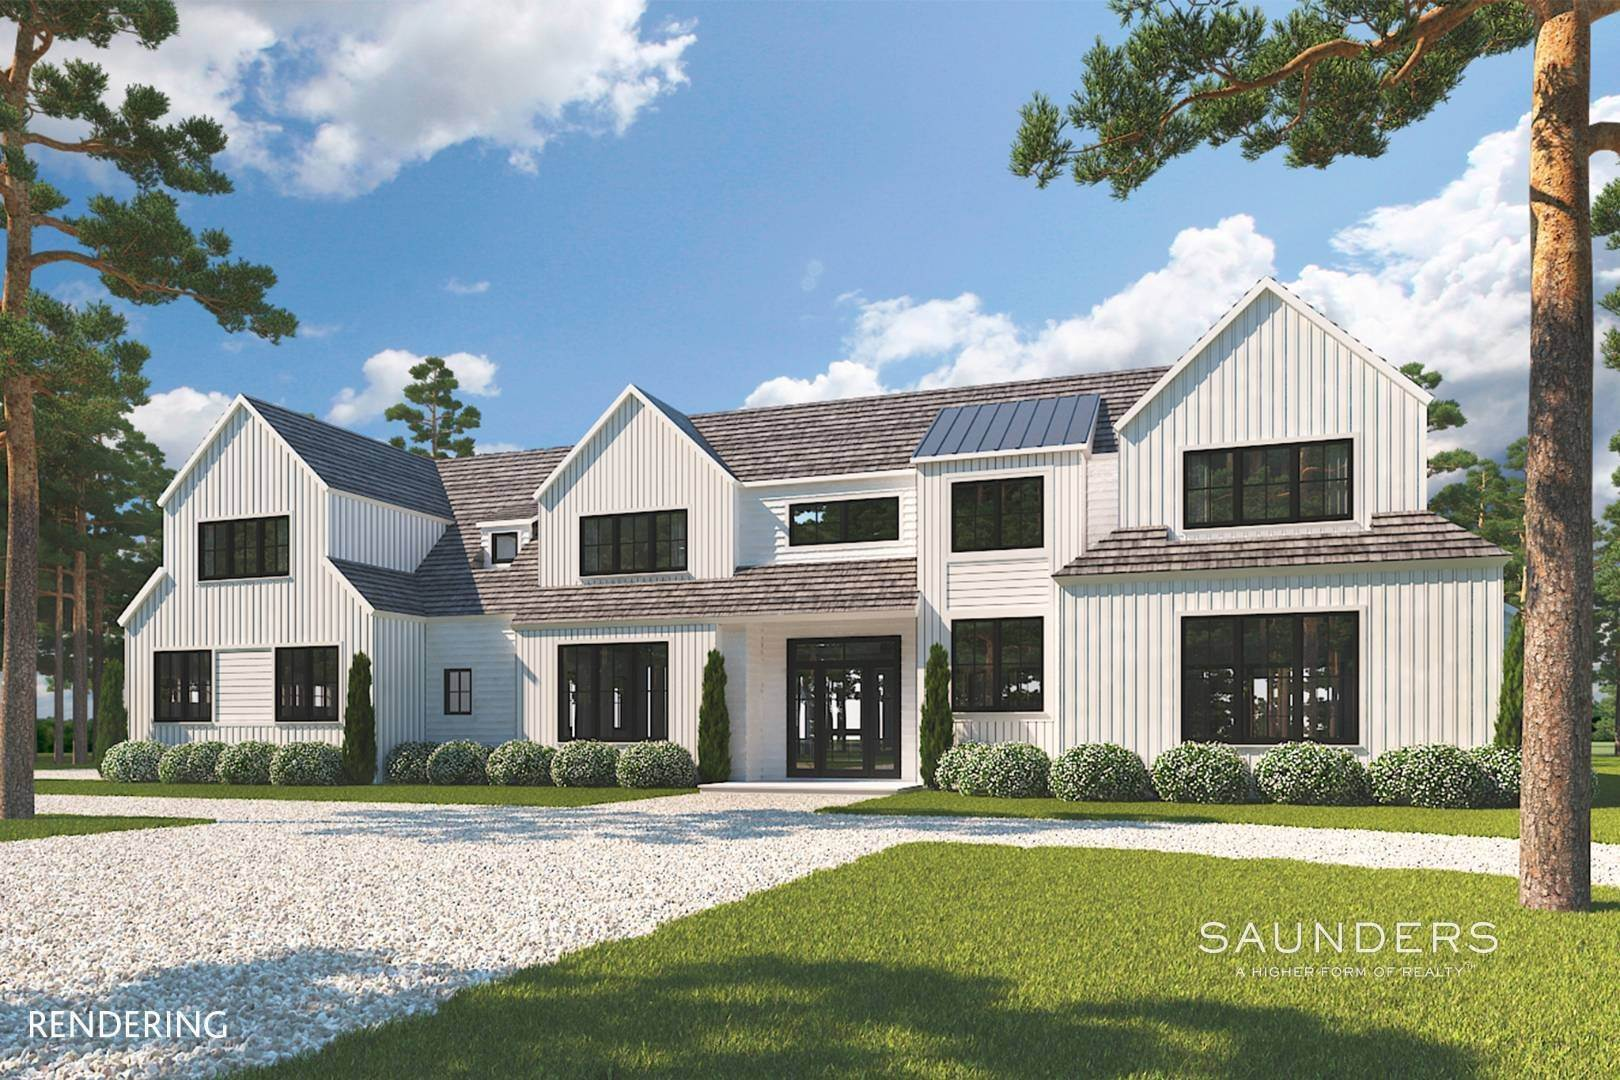 Single Family Homes for Sale at Sagaponack New Construction With Pool, Spa And Tennis 363 Wainscott Harbor Road, Sagaponack, Southampton Town, NY 11968